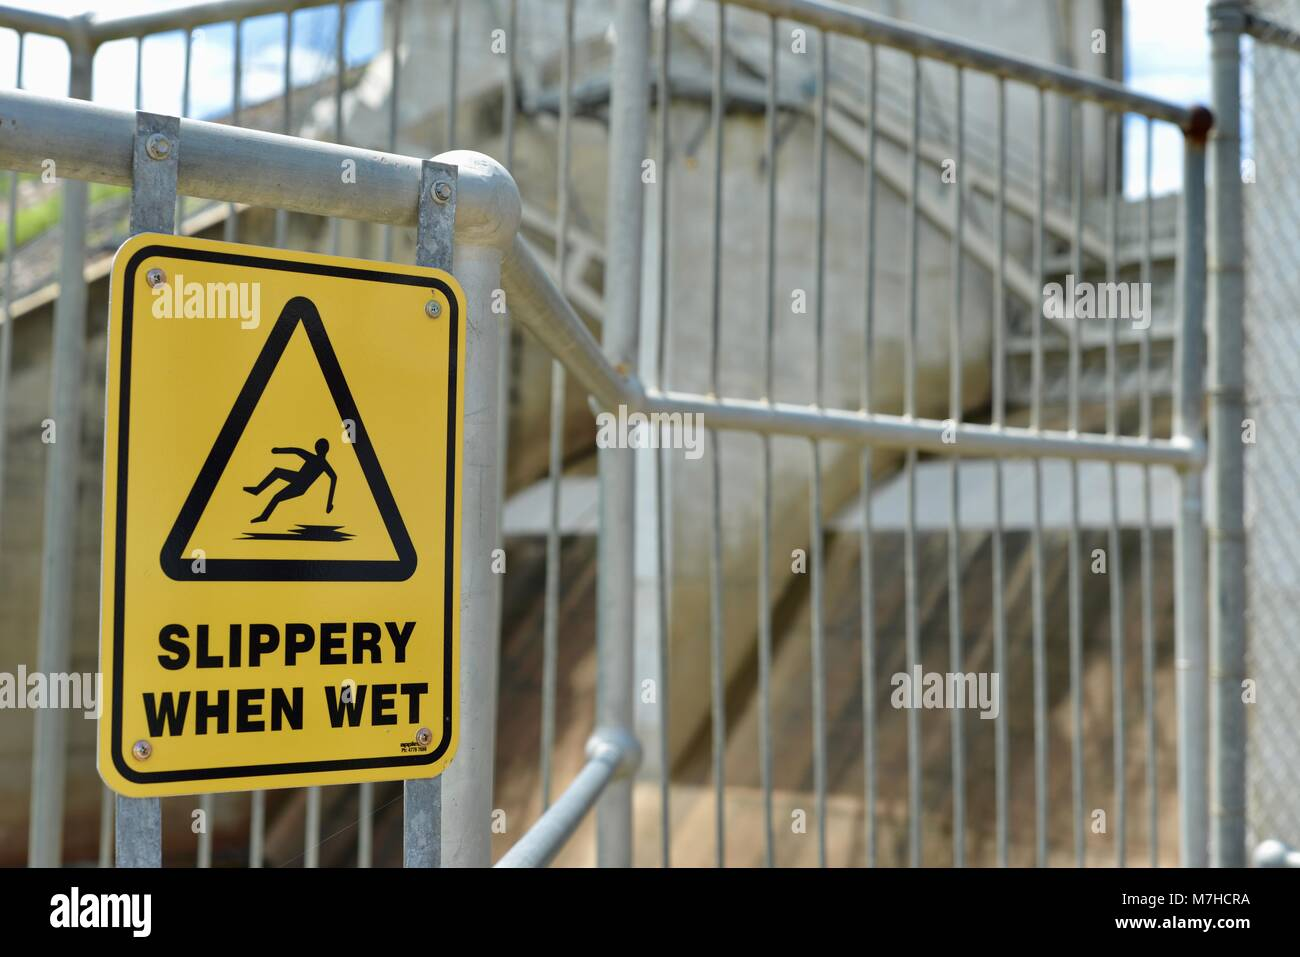 slippery when wet sign with image of man falling over, Ross River Dam, Ross Dam Access, Kelso QLD, Australia - Stock Image